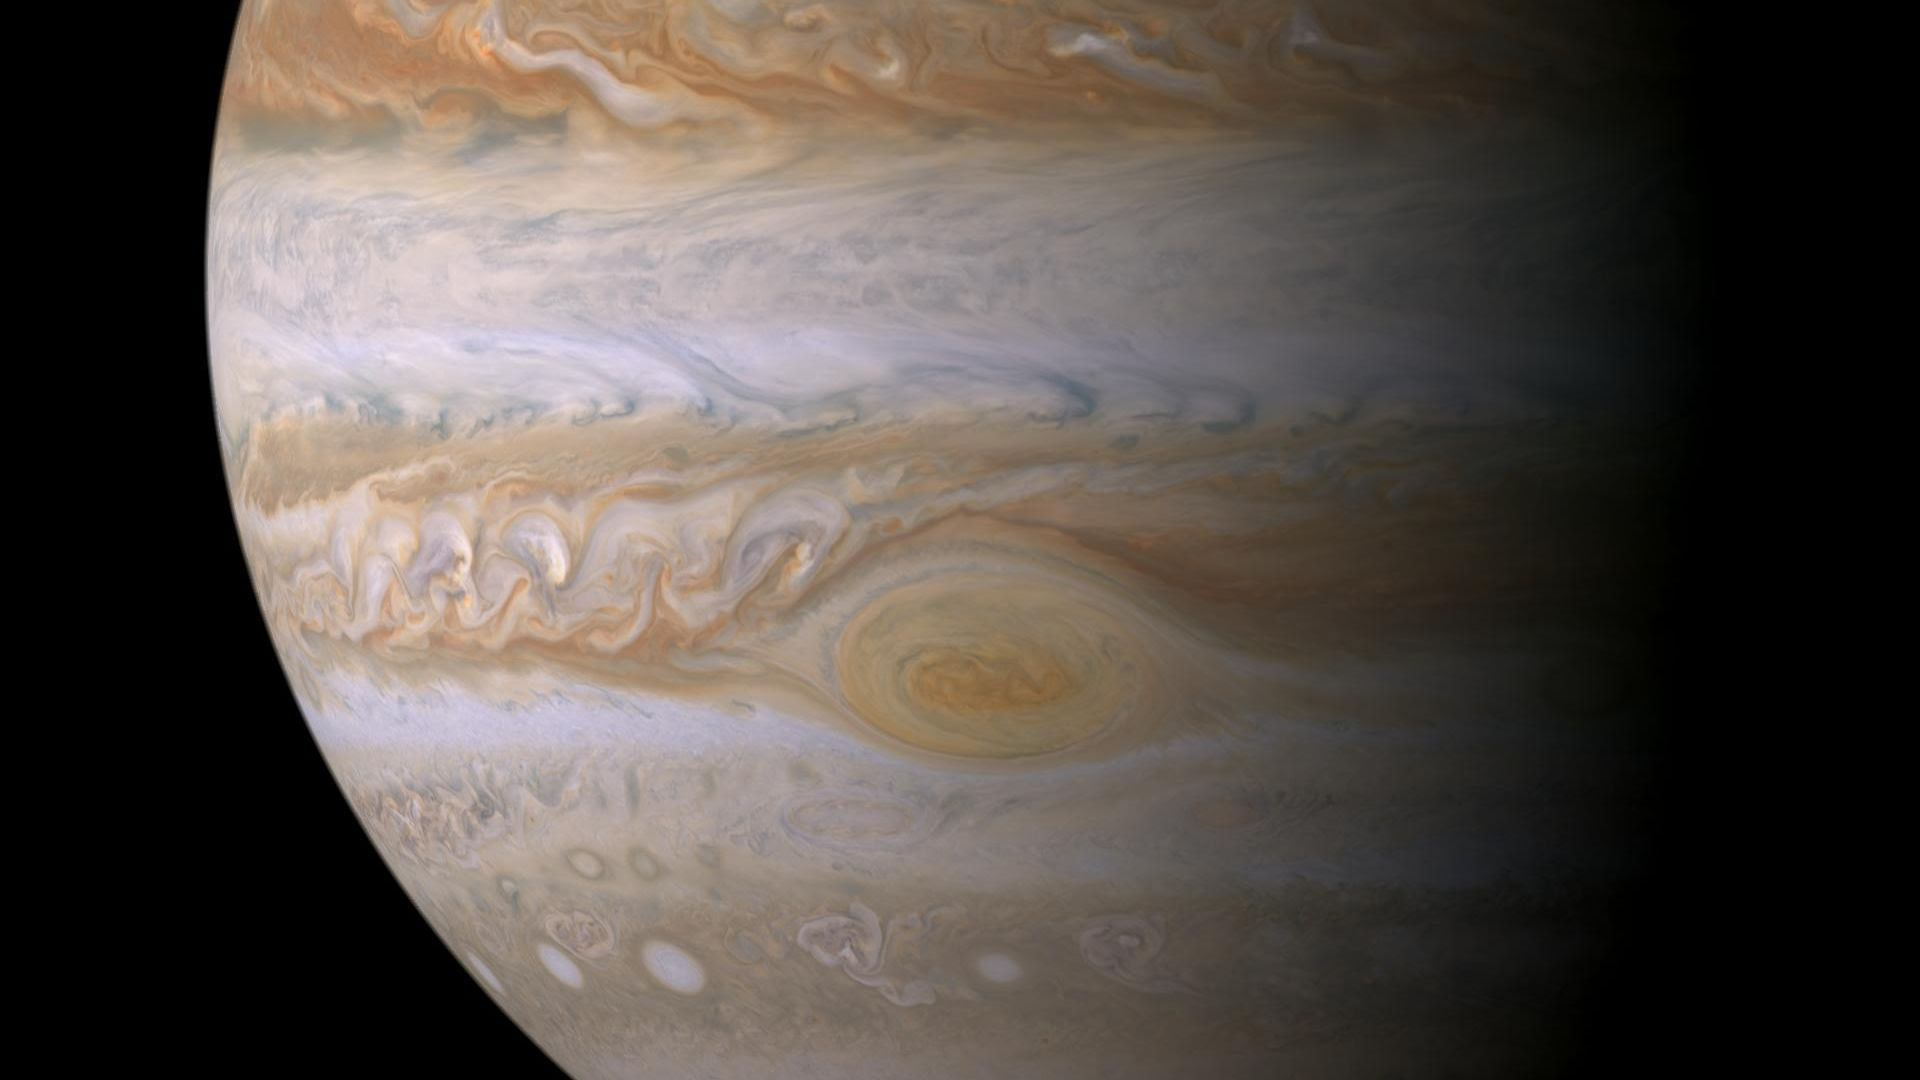 Jupiter as seen by the Cassini spacecraft. Photo: NASA/JPL/SScI